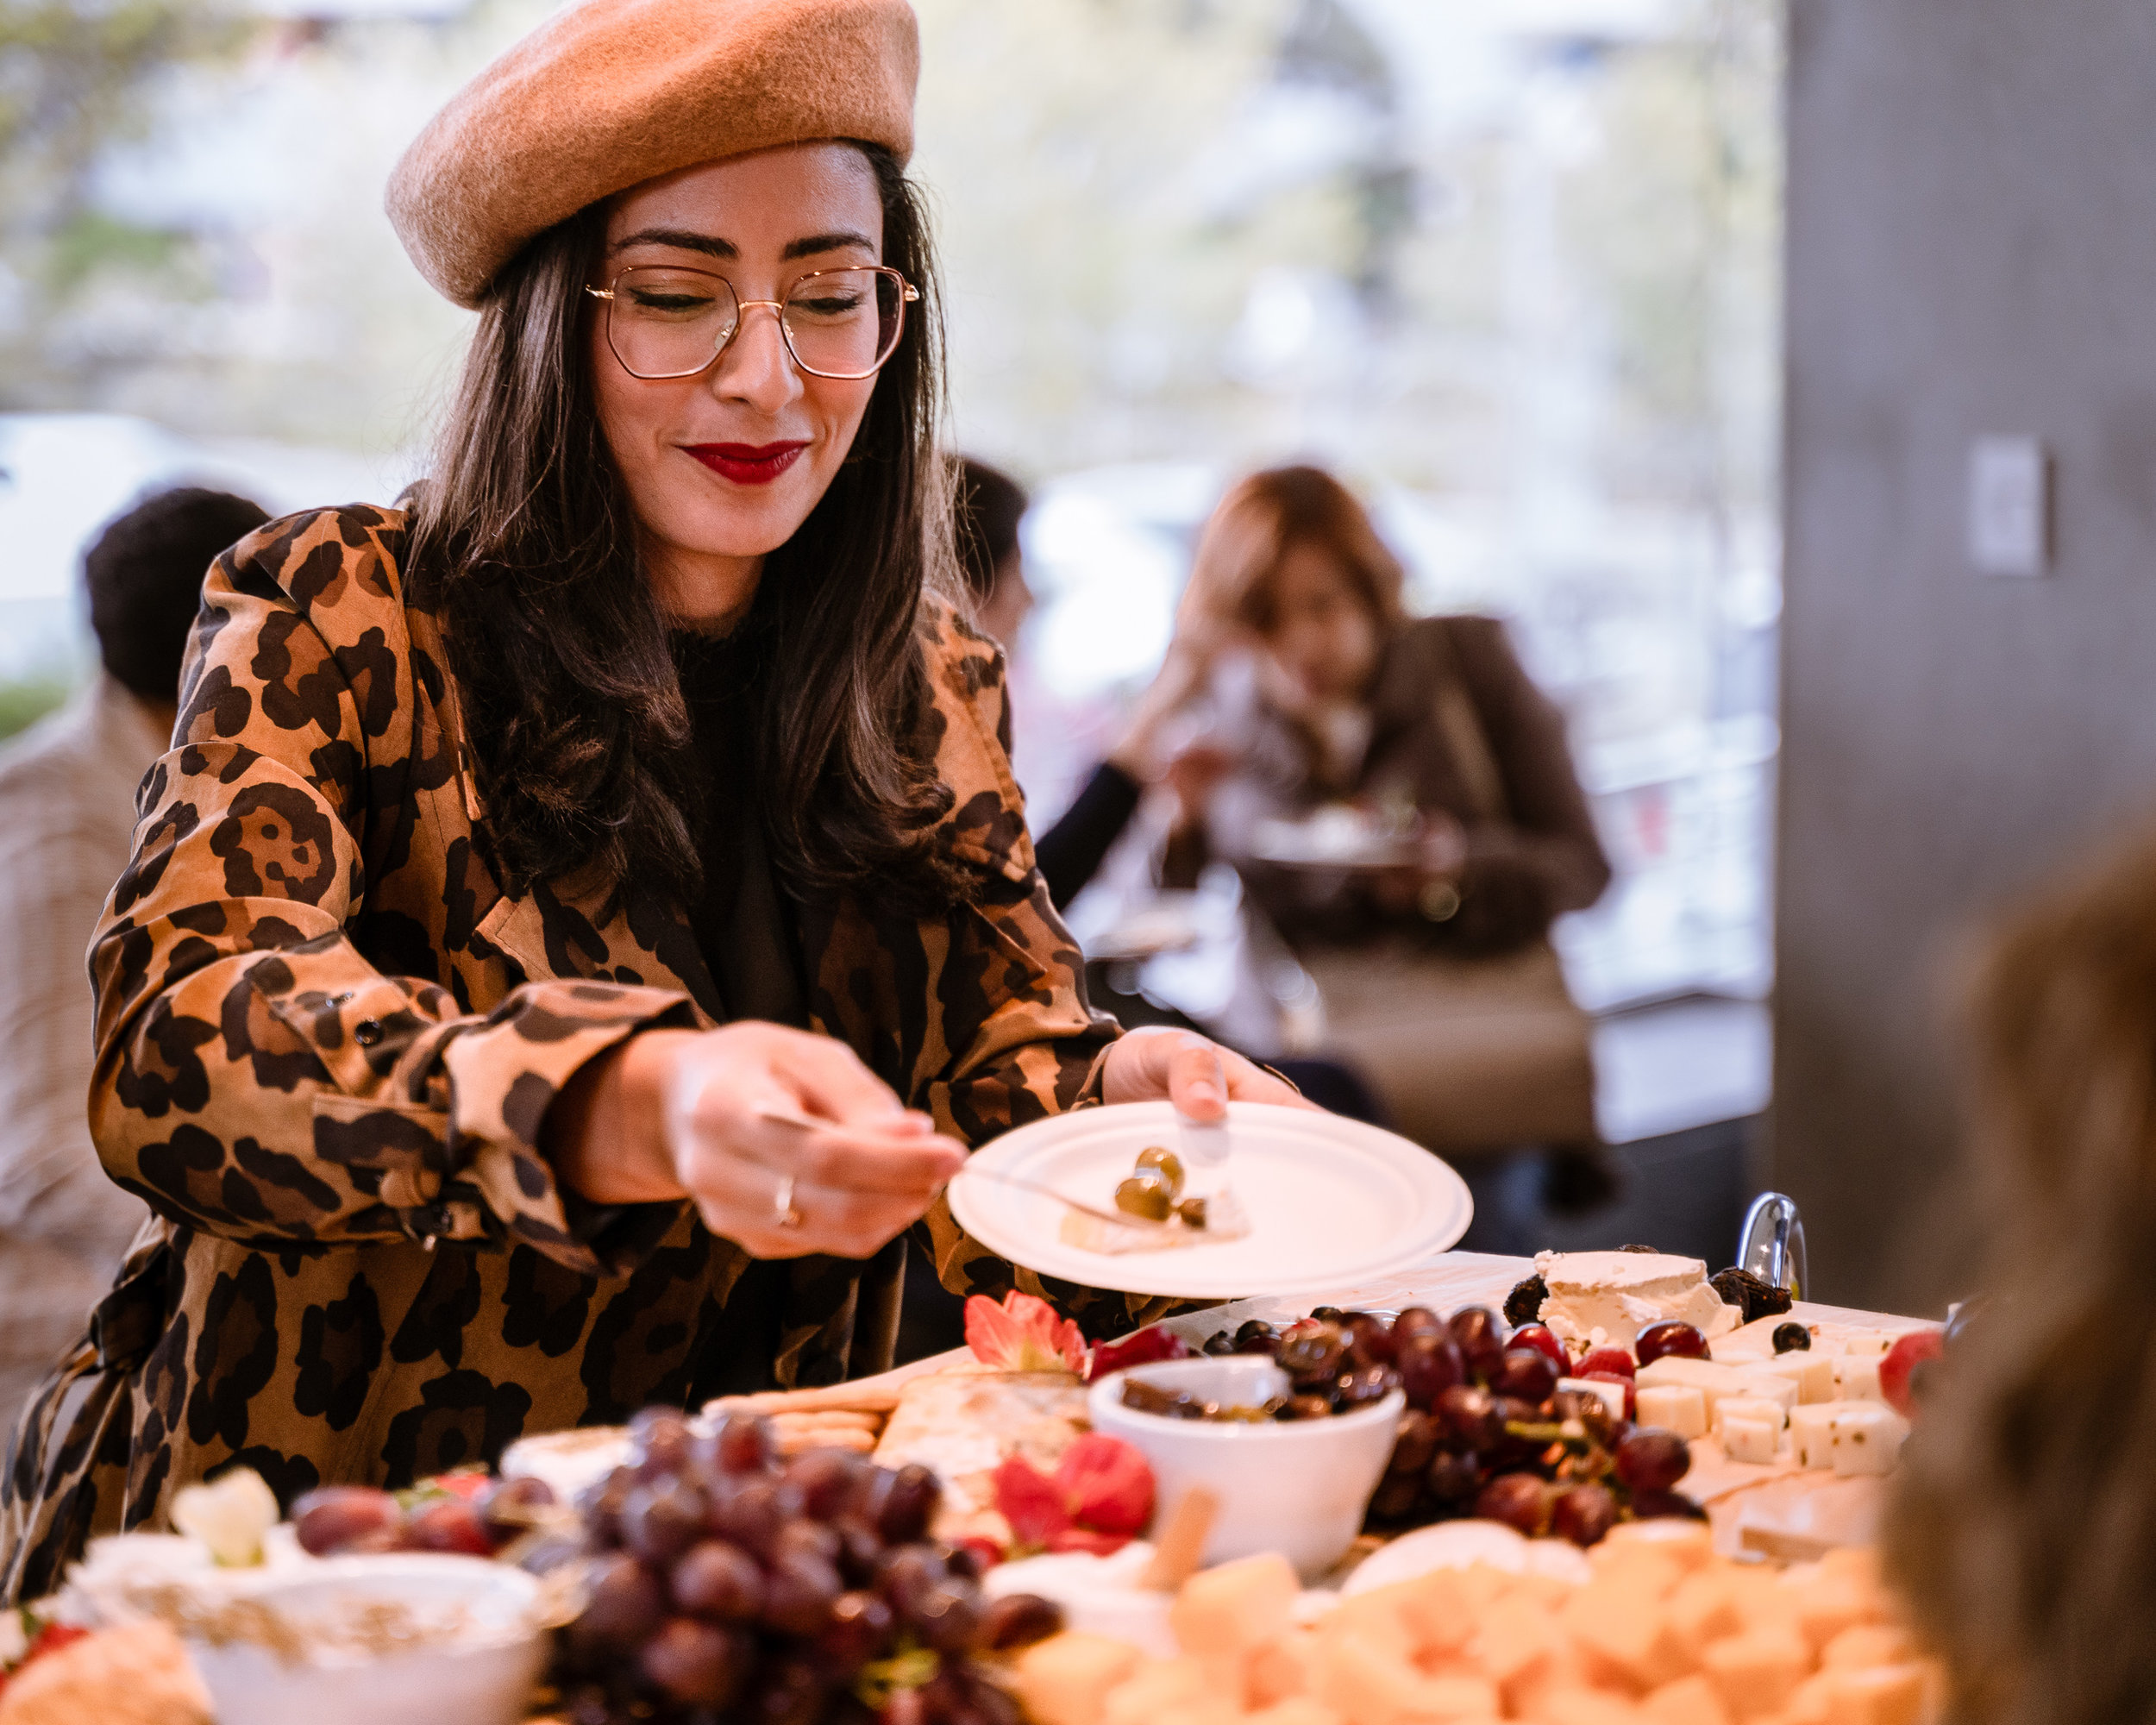 """SMC Fashion Design major Yasmina Sadki from Reims, France serves herself some olives from the hors d'oeuvres table at the reception before tonight's housing discussion at the SMC Broad Stage on Thursday, May 9, 2019. Sadki said that she came partly for the extra credit offered by her SMC Political Science instructor, but that she is """"also very interested in the issues. I hope to be an investor in real estate one day, so I want to understand both sides. Also, I love cheese!"""" The SMC Public Policy Institute is presenting its 8th Annual Spring Symposium, """"There Goes the Neighborhood, Part II: How might policy approaches prevent displacement in neighborhoods affected by gentrification?"""" from May 4-9. Tonight's final event in the series is """"Where Goes the Road to Solving California's Housing Crisis? A Keynote Discussion with Legislative Leaders."""" The panel includes California state legislators Senator Ben Allen (SD26 – Santa Monica) and Senator Scott Weiner (SD11 – San Francisco), author of SB 50 which proposes bold approaches to California's housing issues, and Santa Monica Mayor Gleam Davis, a former Co-Chair of Santa Monicans for Renters' Rights and leading advocate for Santa Monica's innovative policy solutions and funding for affordable housing."""" (Glenn Zucman/The Corsair)"""